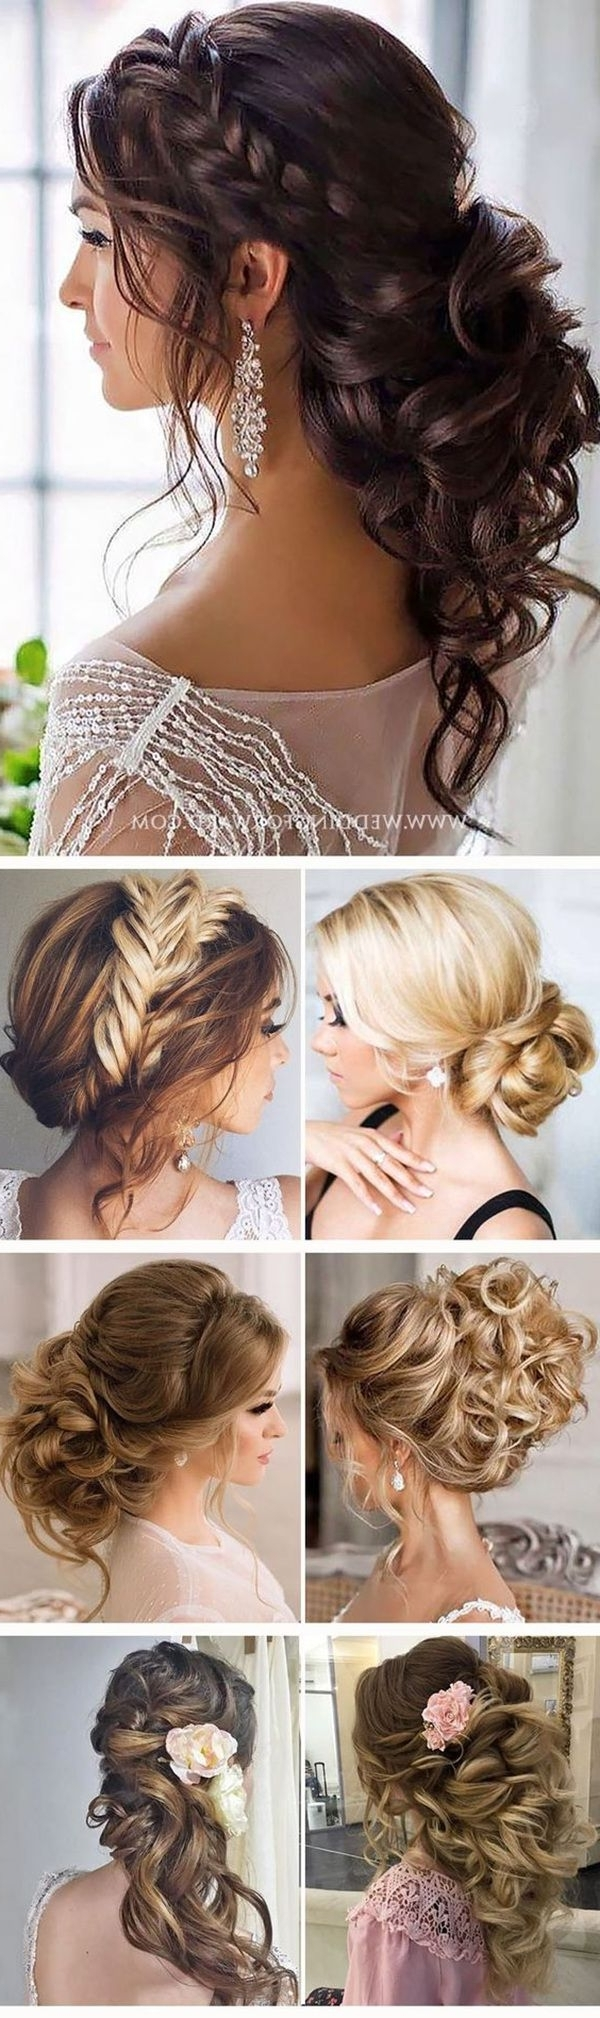 Latest Simple Wedding Hairstyles For Long Hair Thick Throughout Makeup Etc Easy Updo Tutorial Casual Impressive Hairstyles For Long (View 7 of 15)